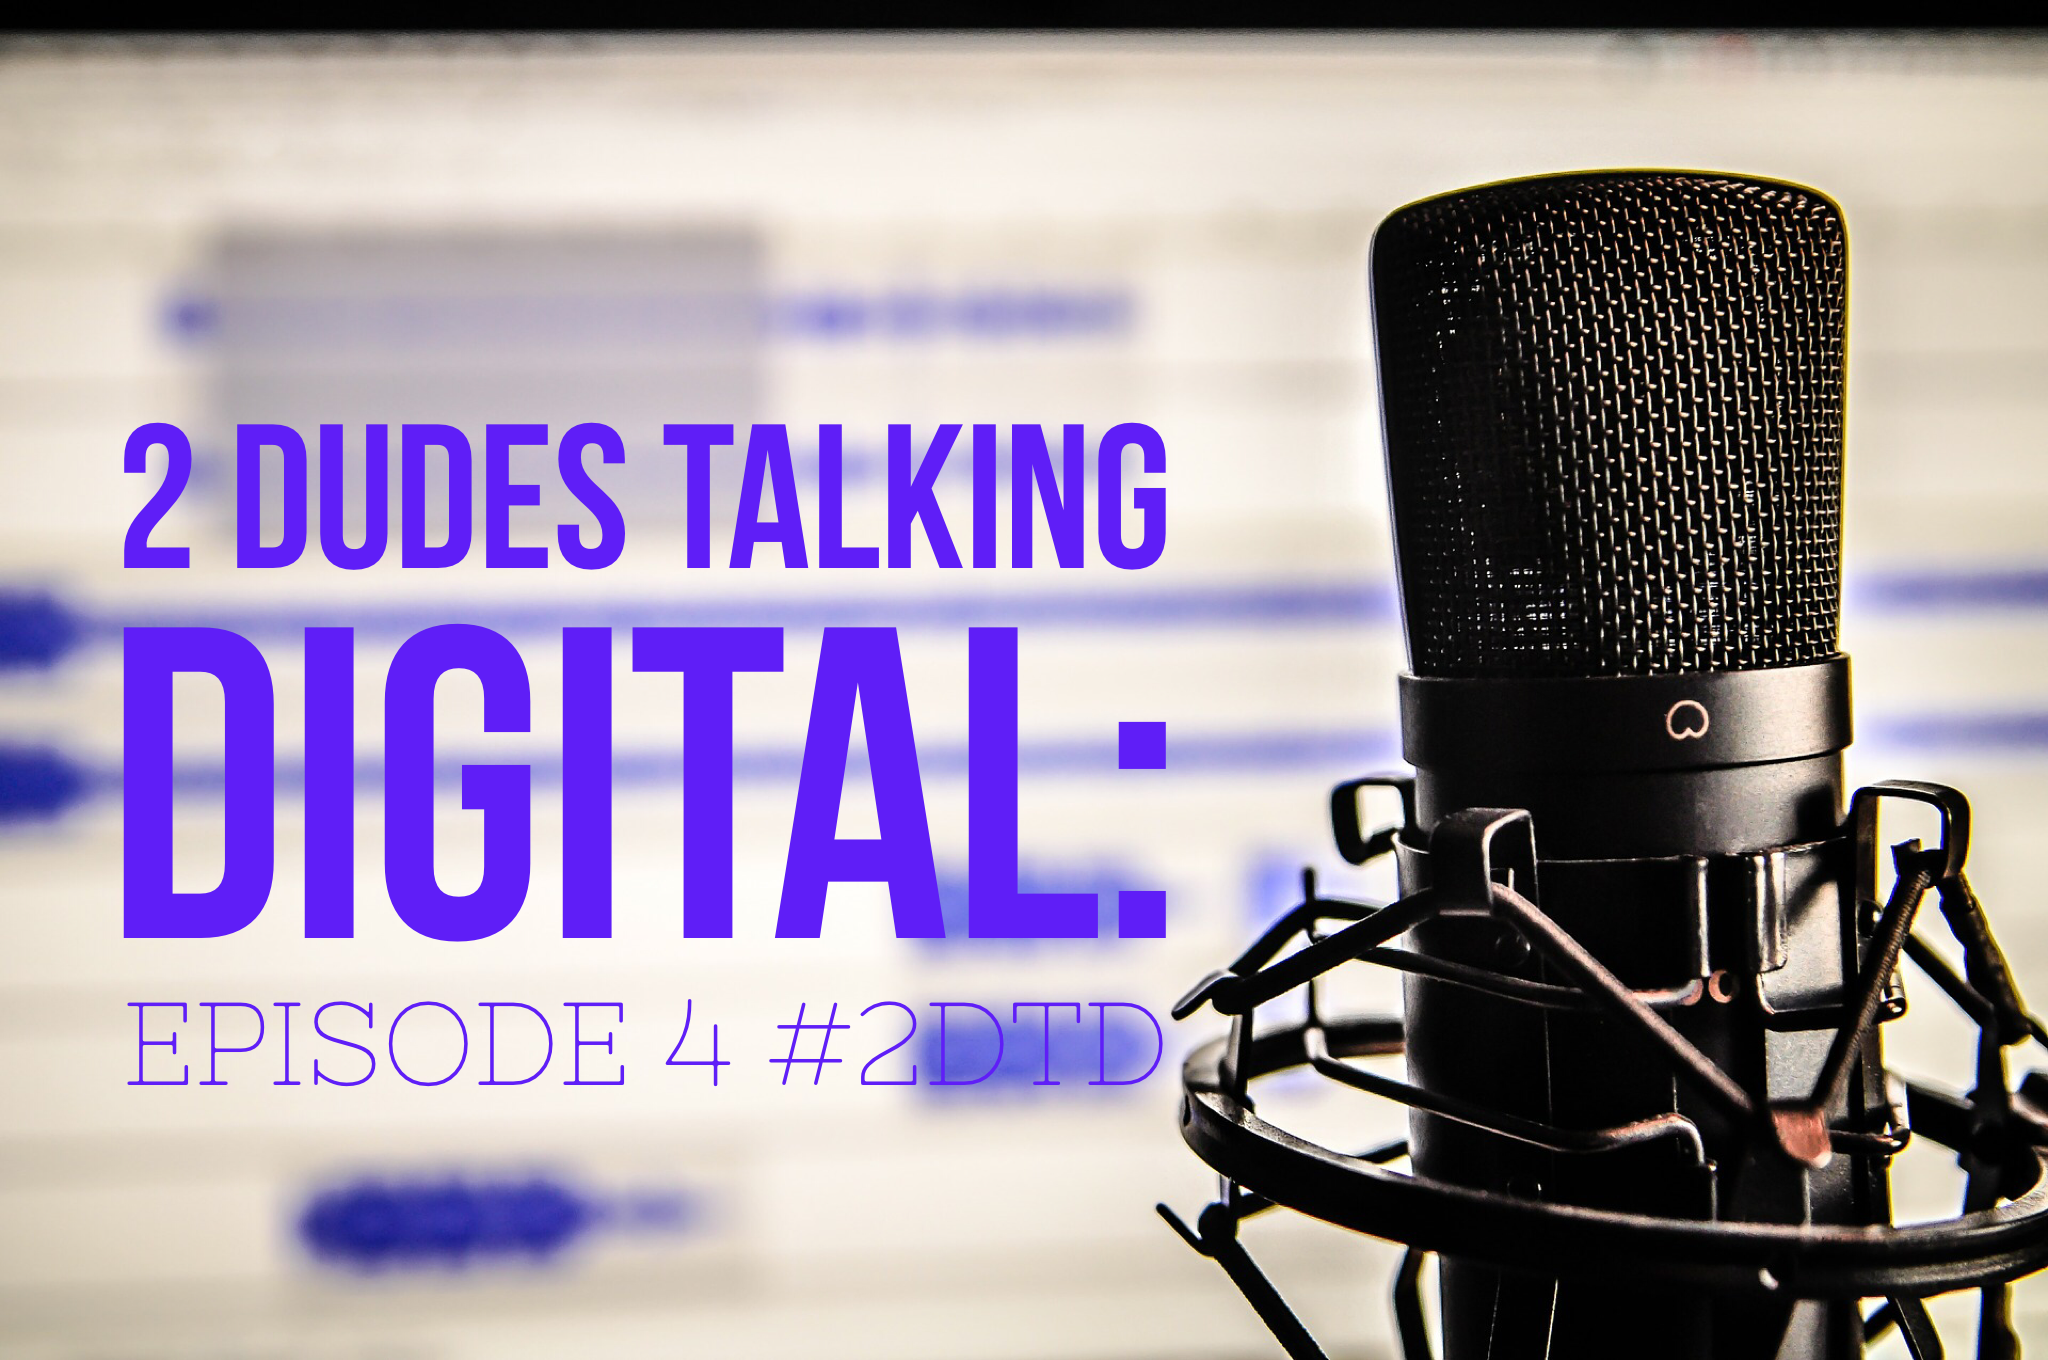 2 Dudes Talking Digital Episode 4 Graphic